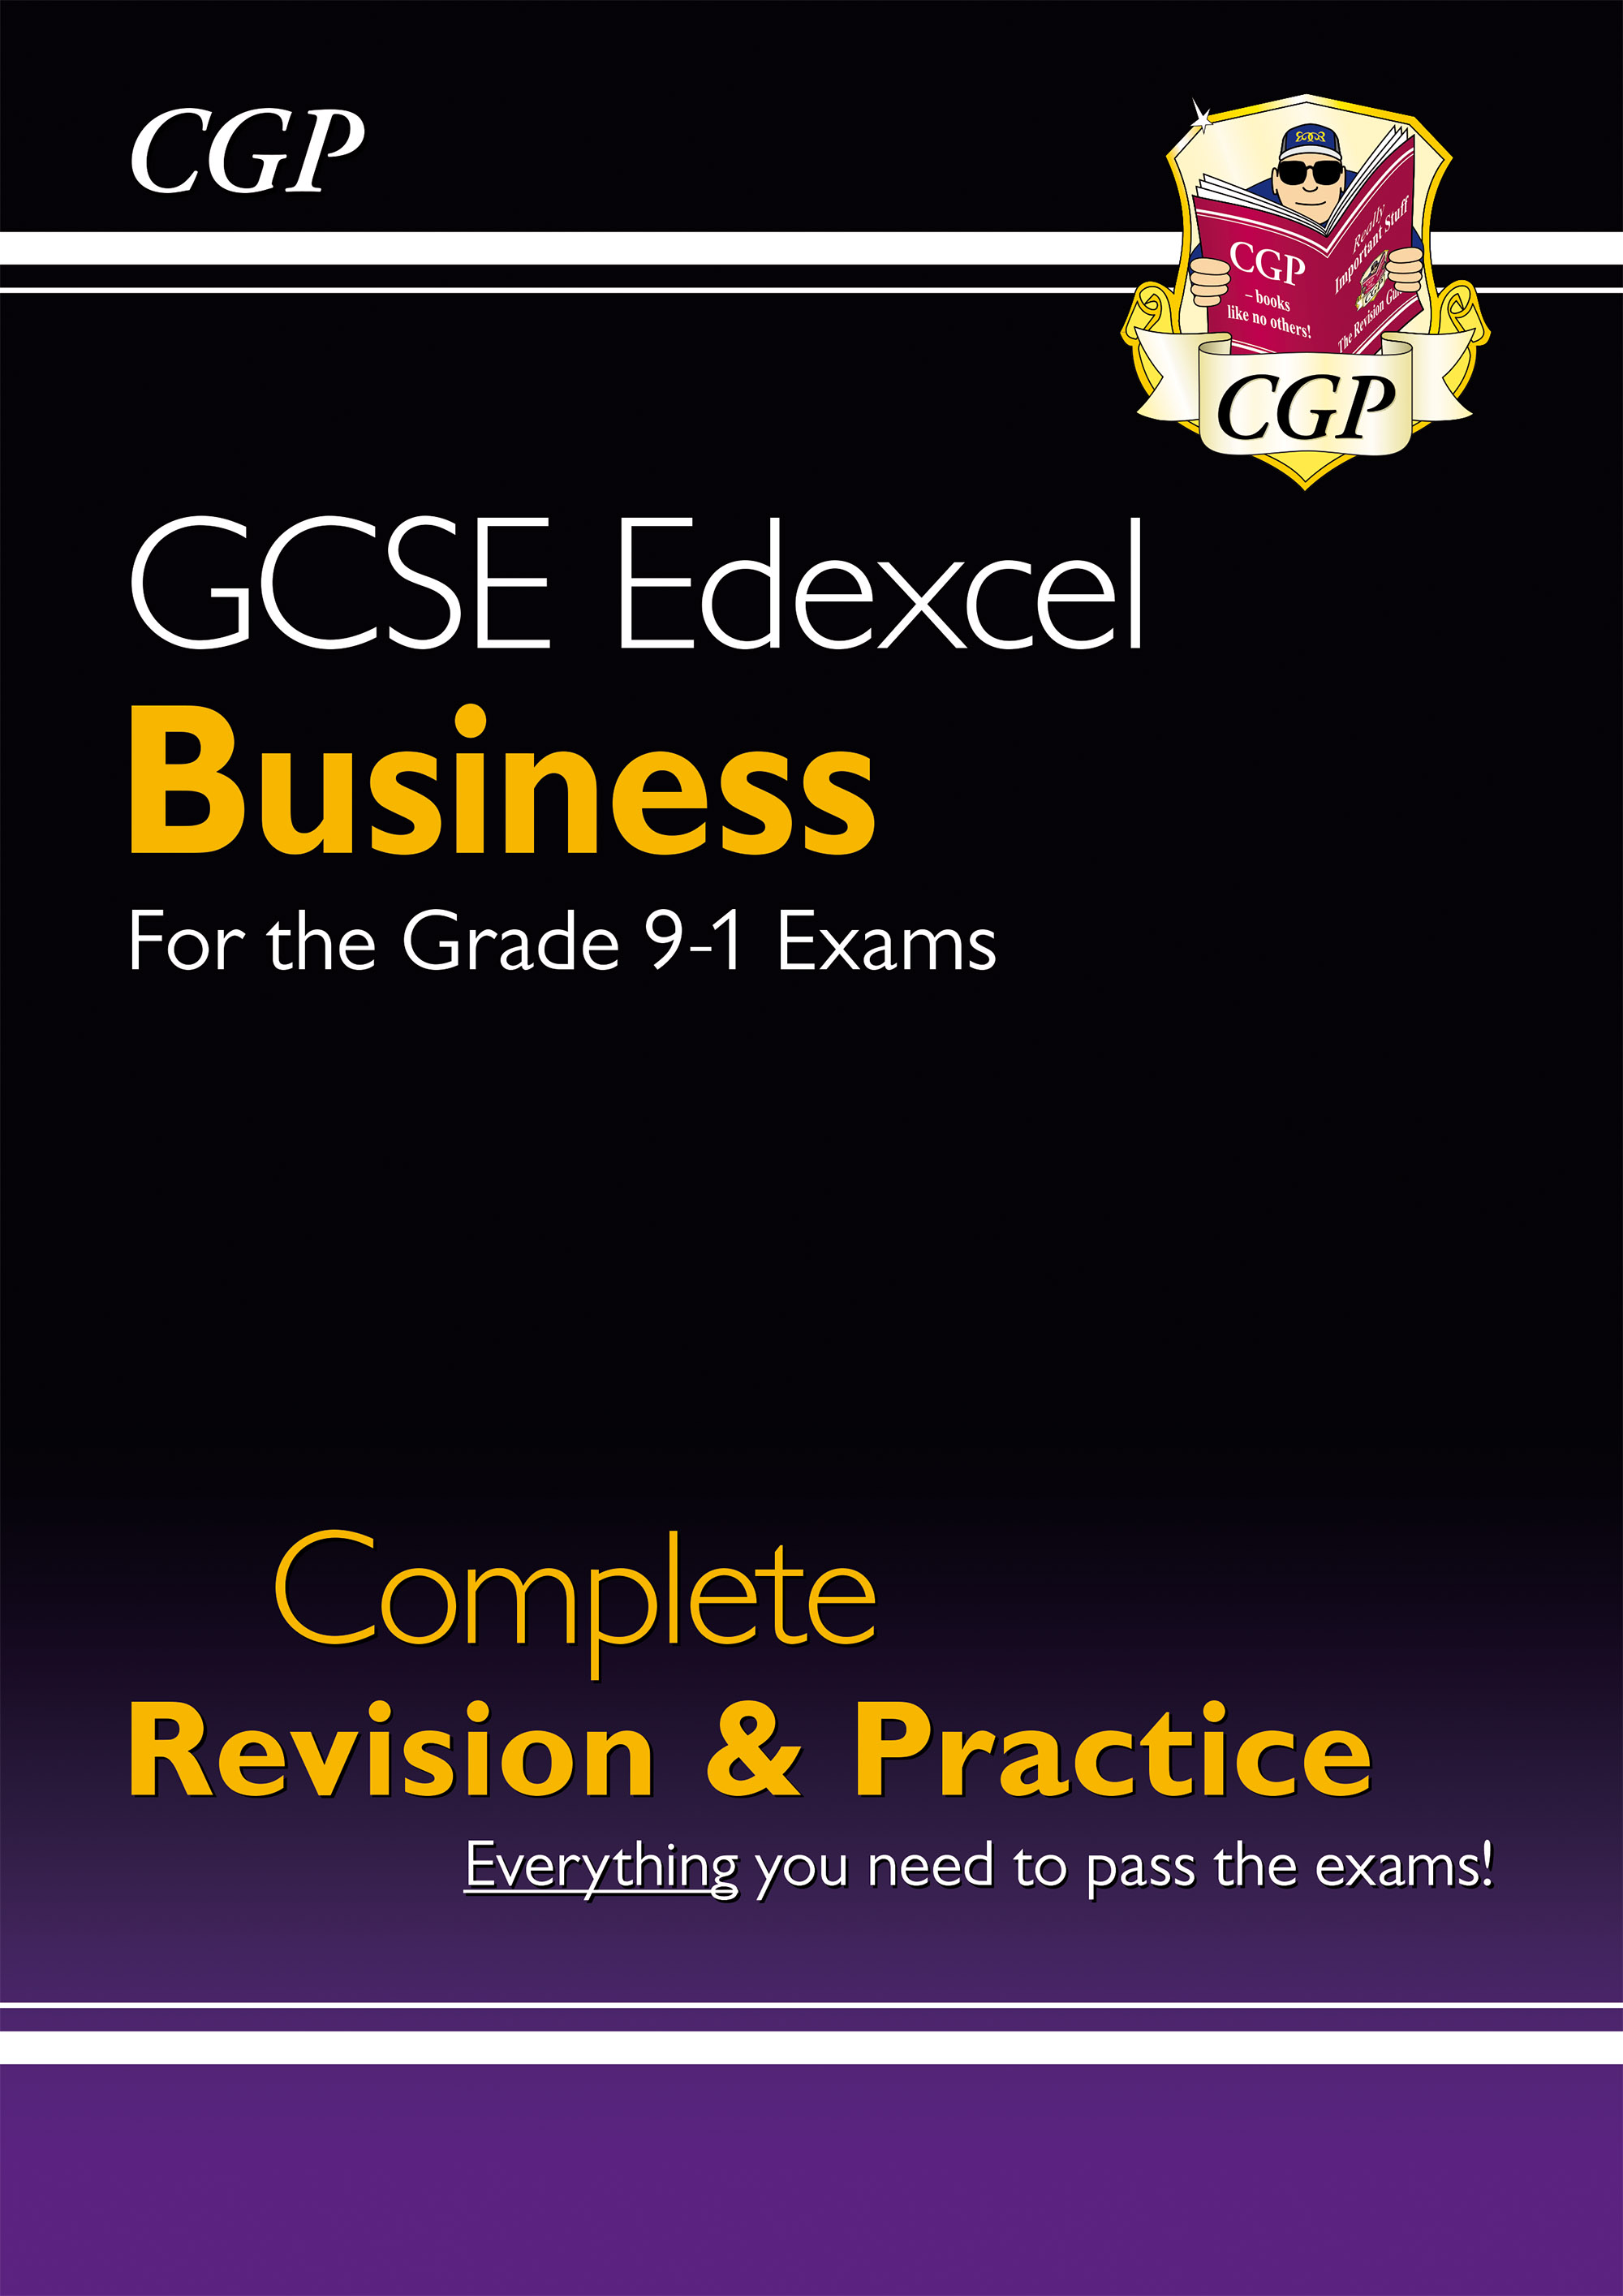 BUES41DK - New GCSE Business Edexcel Complete Revision and Practice - Grade 9-1 Course